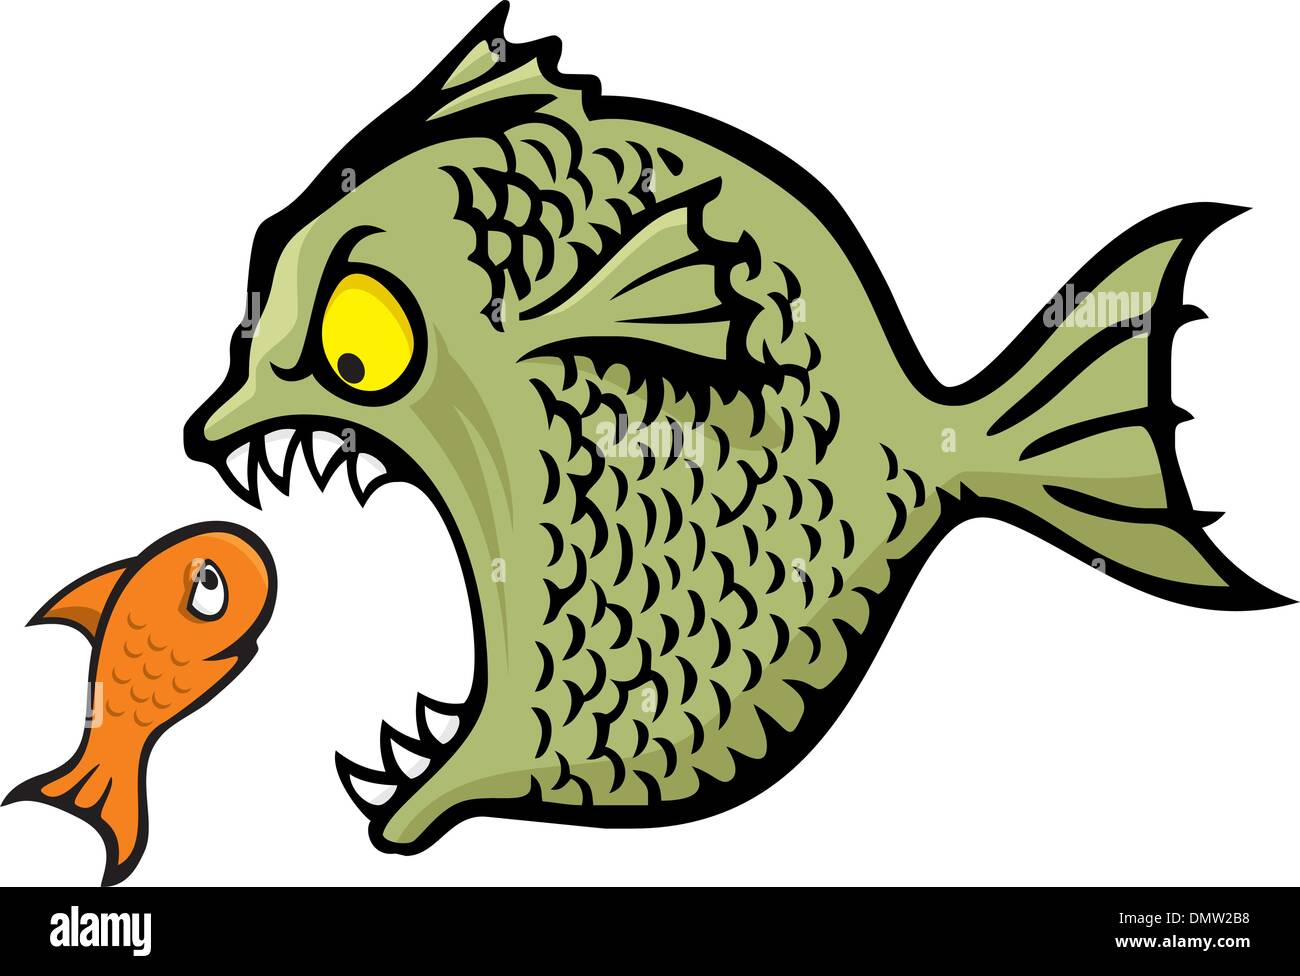 Bully fish - Stock Vector